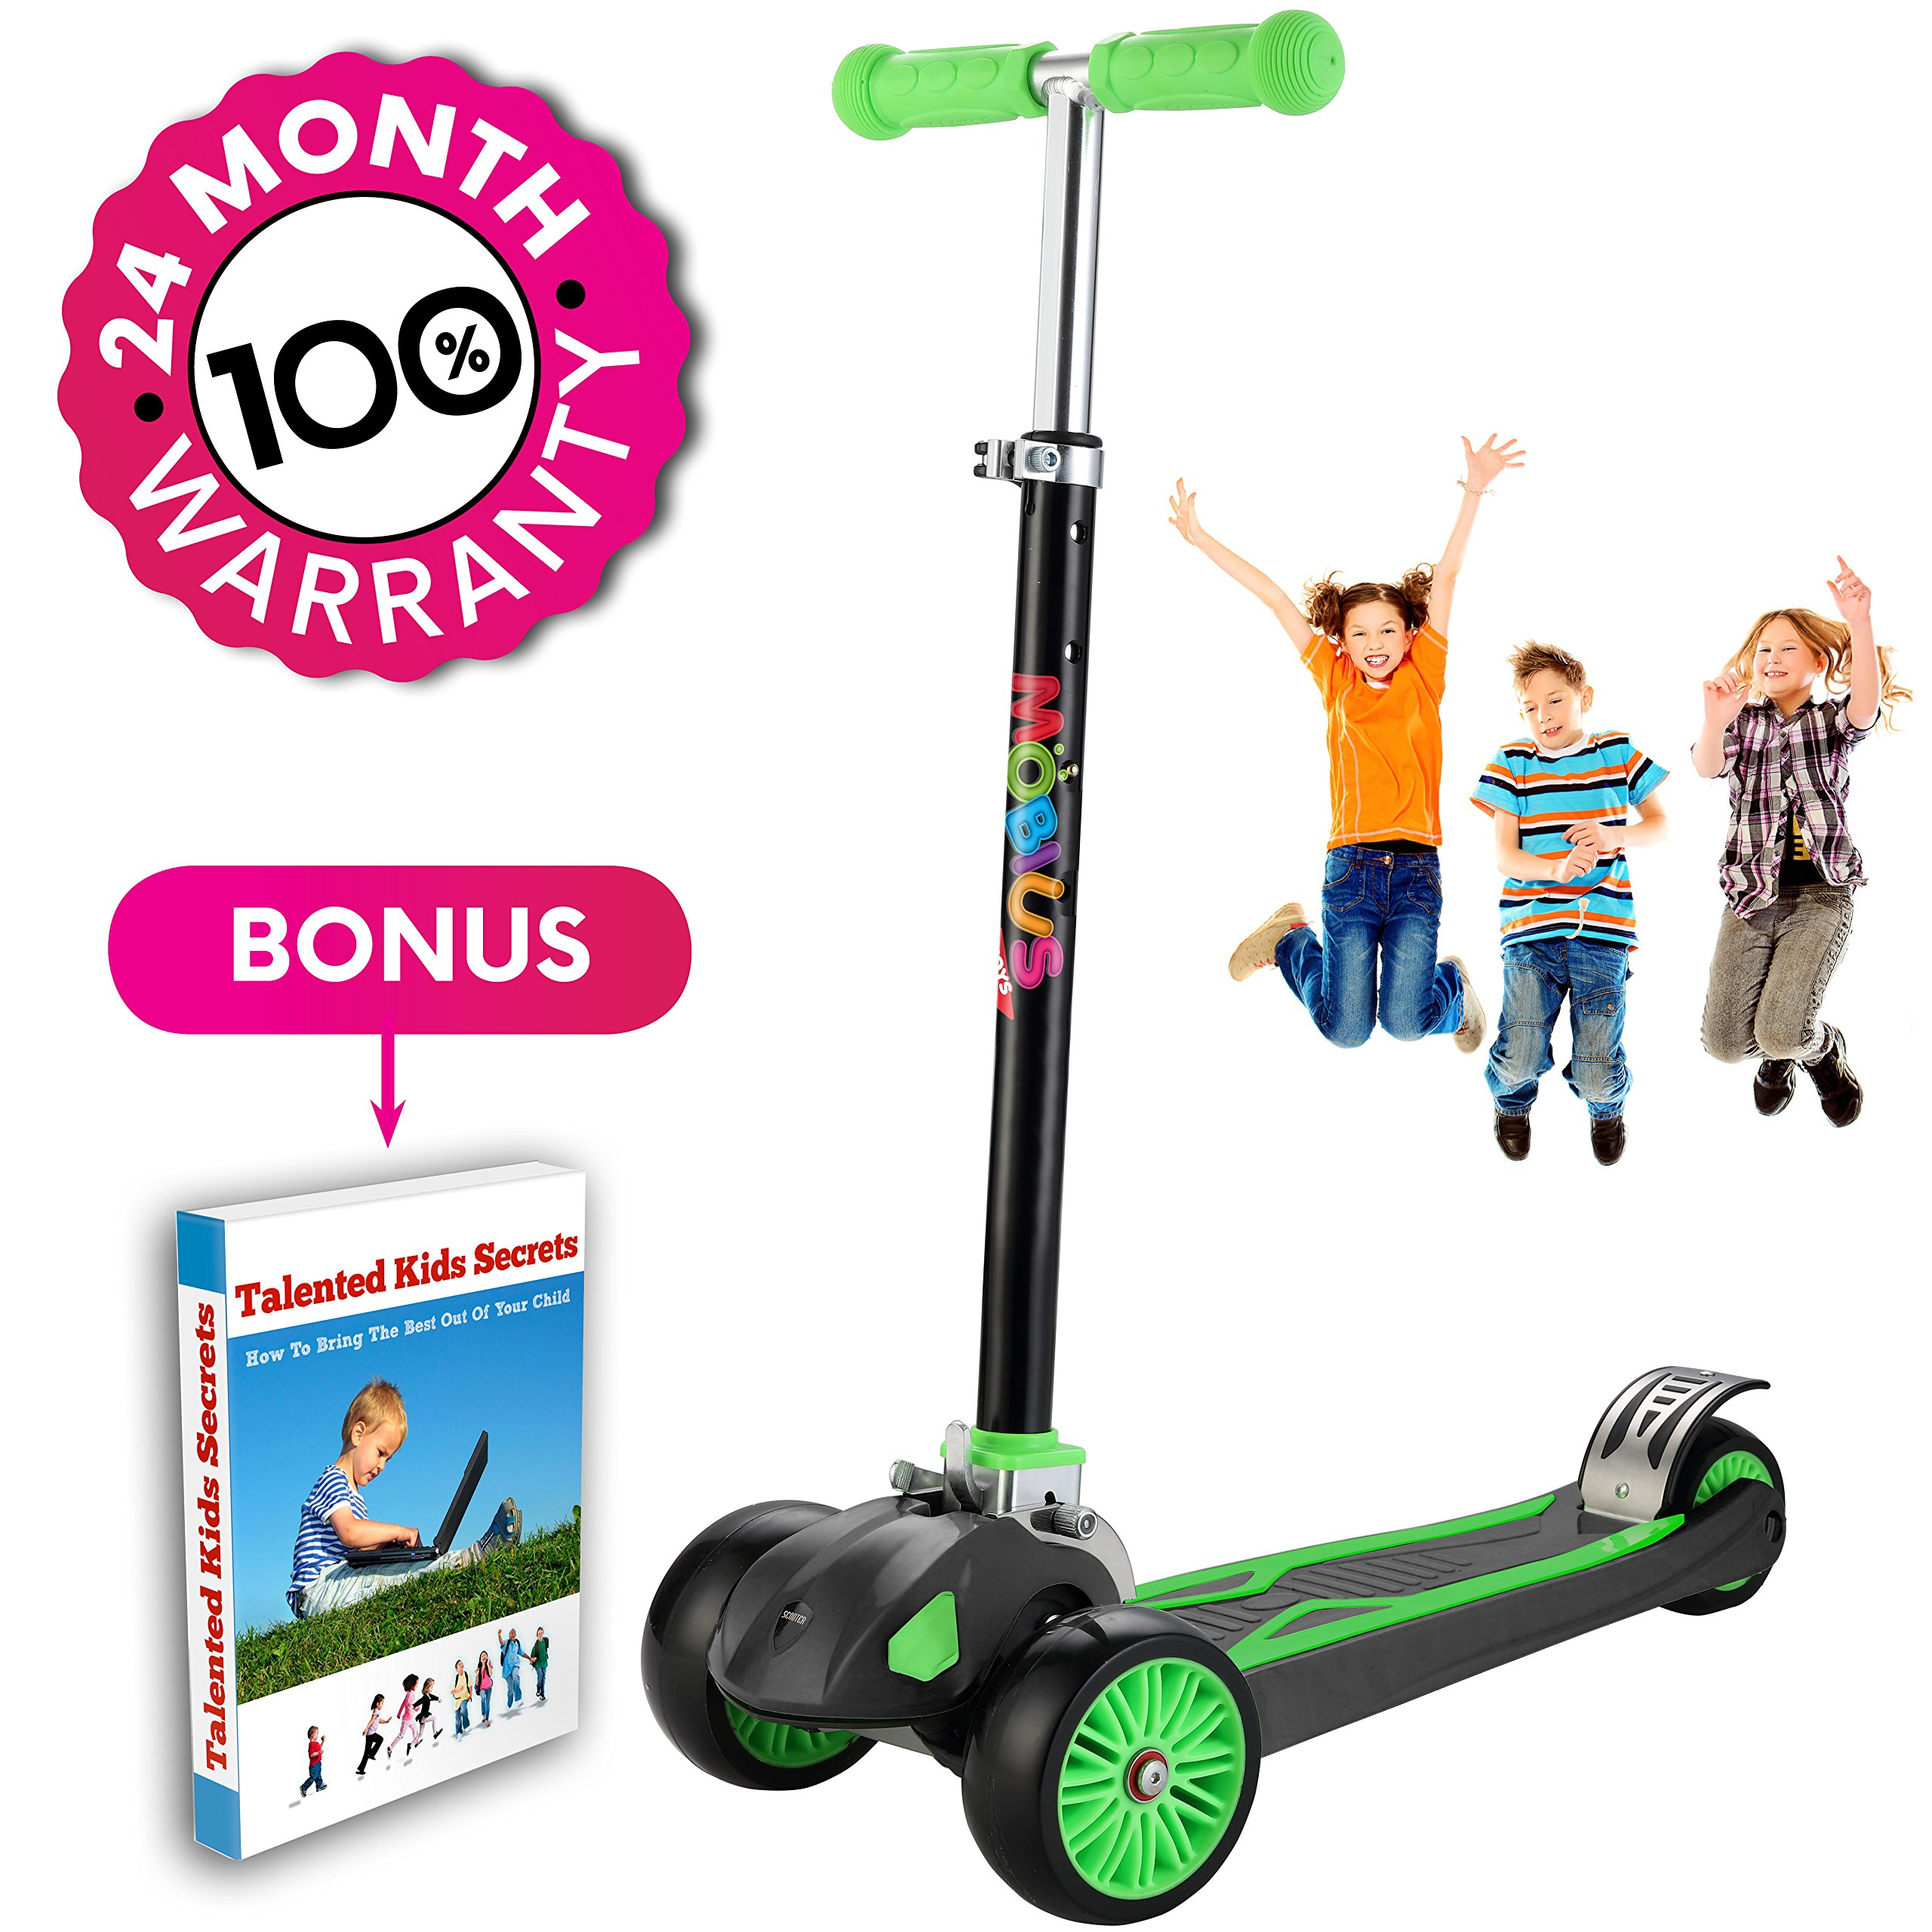 Scooter For Kids, Maxi Foldable Kick Scooter Deluxe, handlebars adjustability from age 5-12, Surface-safety Balance Technology, 2''widthX3 Wheels, 24 Months Guarantee, eBookGift ''Talented Kids Secrets'' by Mobius Toys